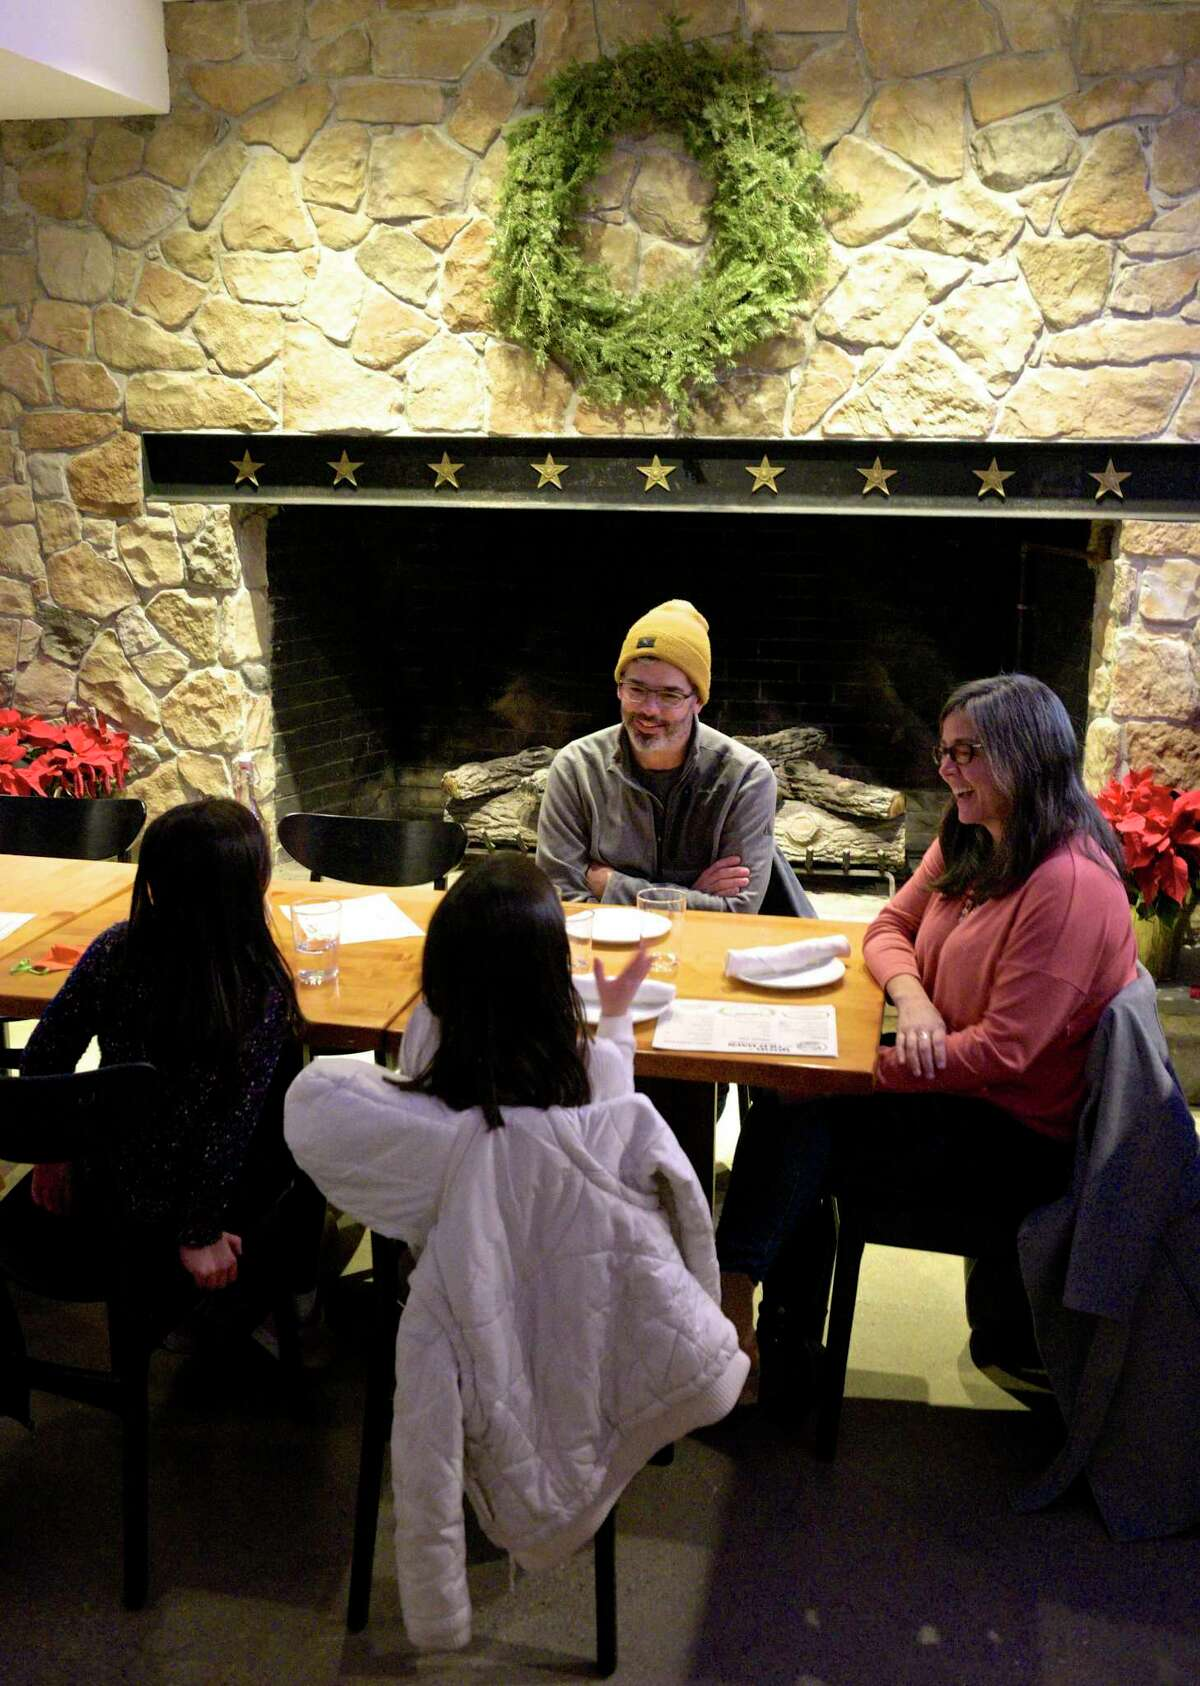 The Kakos family of Danbury, Holland, 6, left, Maryn, 8, Gary and Alaina are at Good Old Days Pizzeria and Cocktail Den, in the lower level of Marygold's on Main, on its opening night, Wednesday, December 30, 2020, in Newtown. Conn. they said they follow Matt, pizza guy Matteo Stanz, on Instagram and go wherever he's cooking.